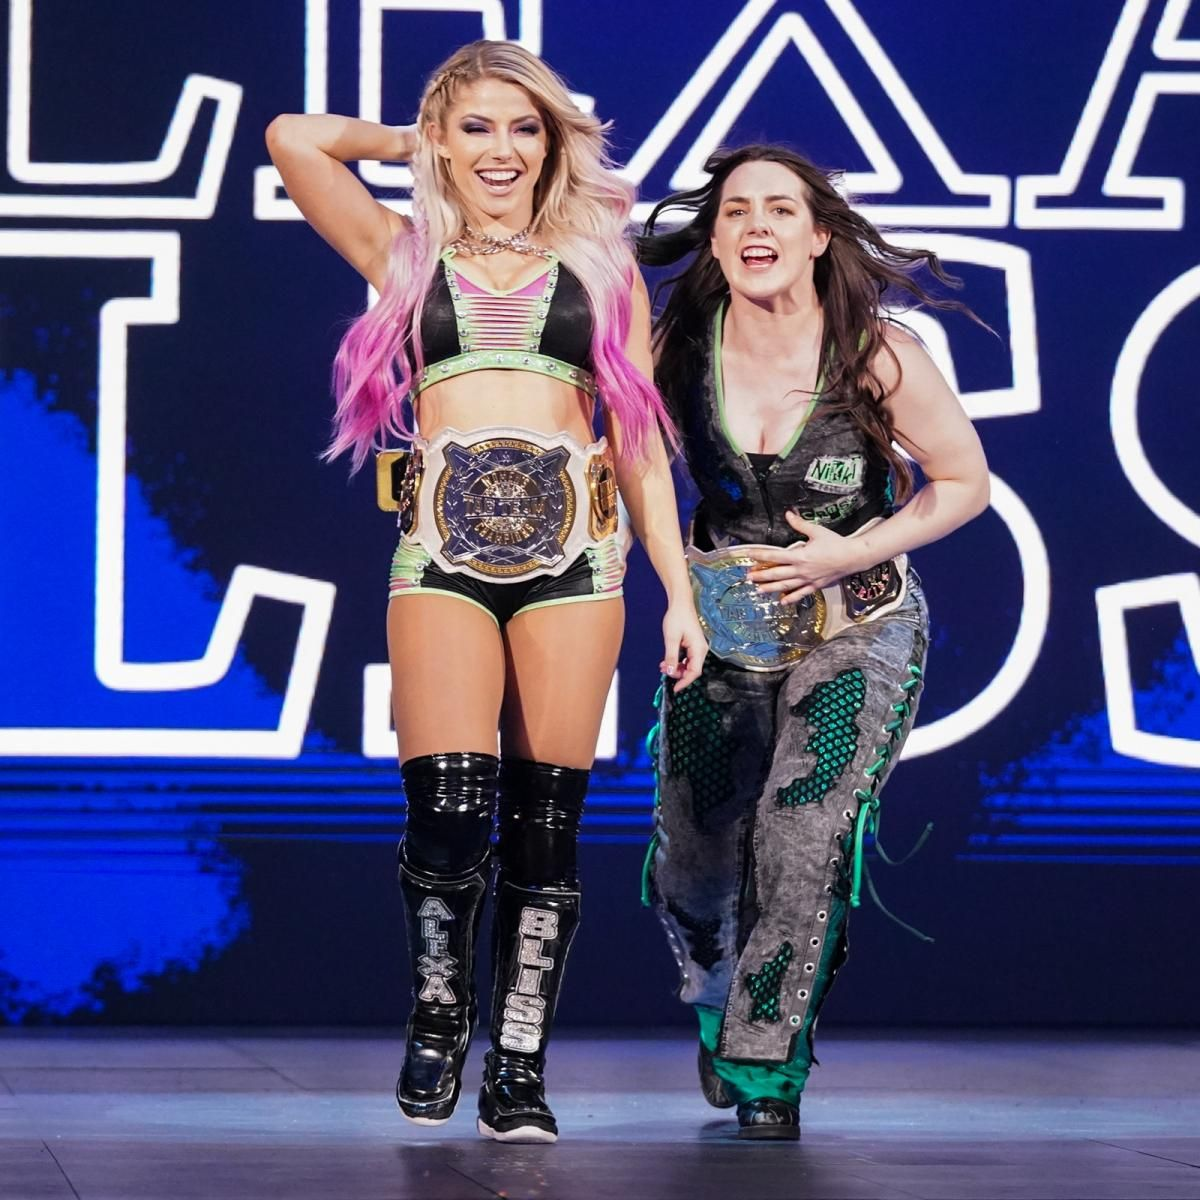 Alexa Bliss & Nikki Cross WWE Tandem Won't Be Over, Says The Later 2